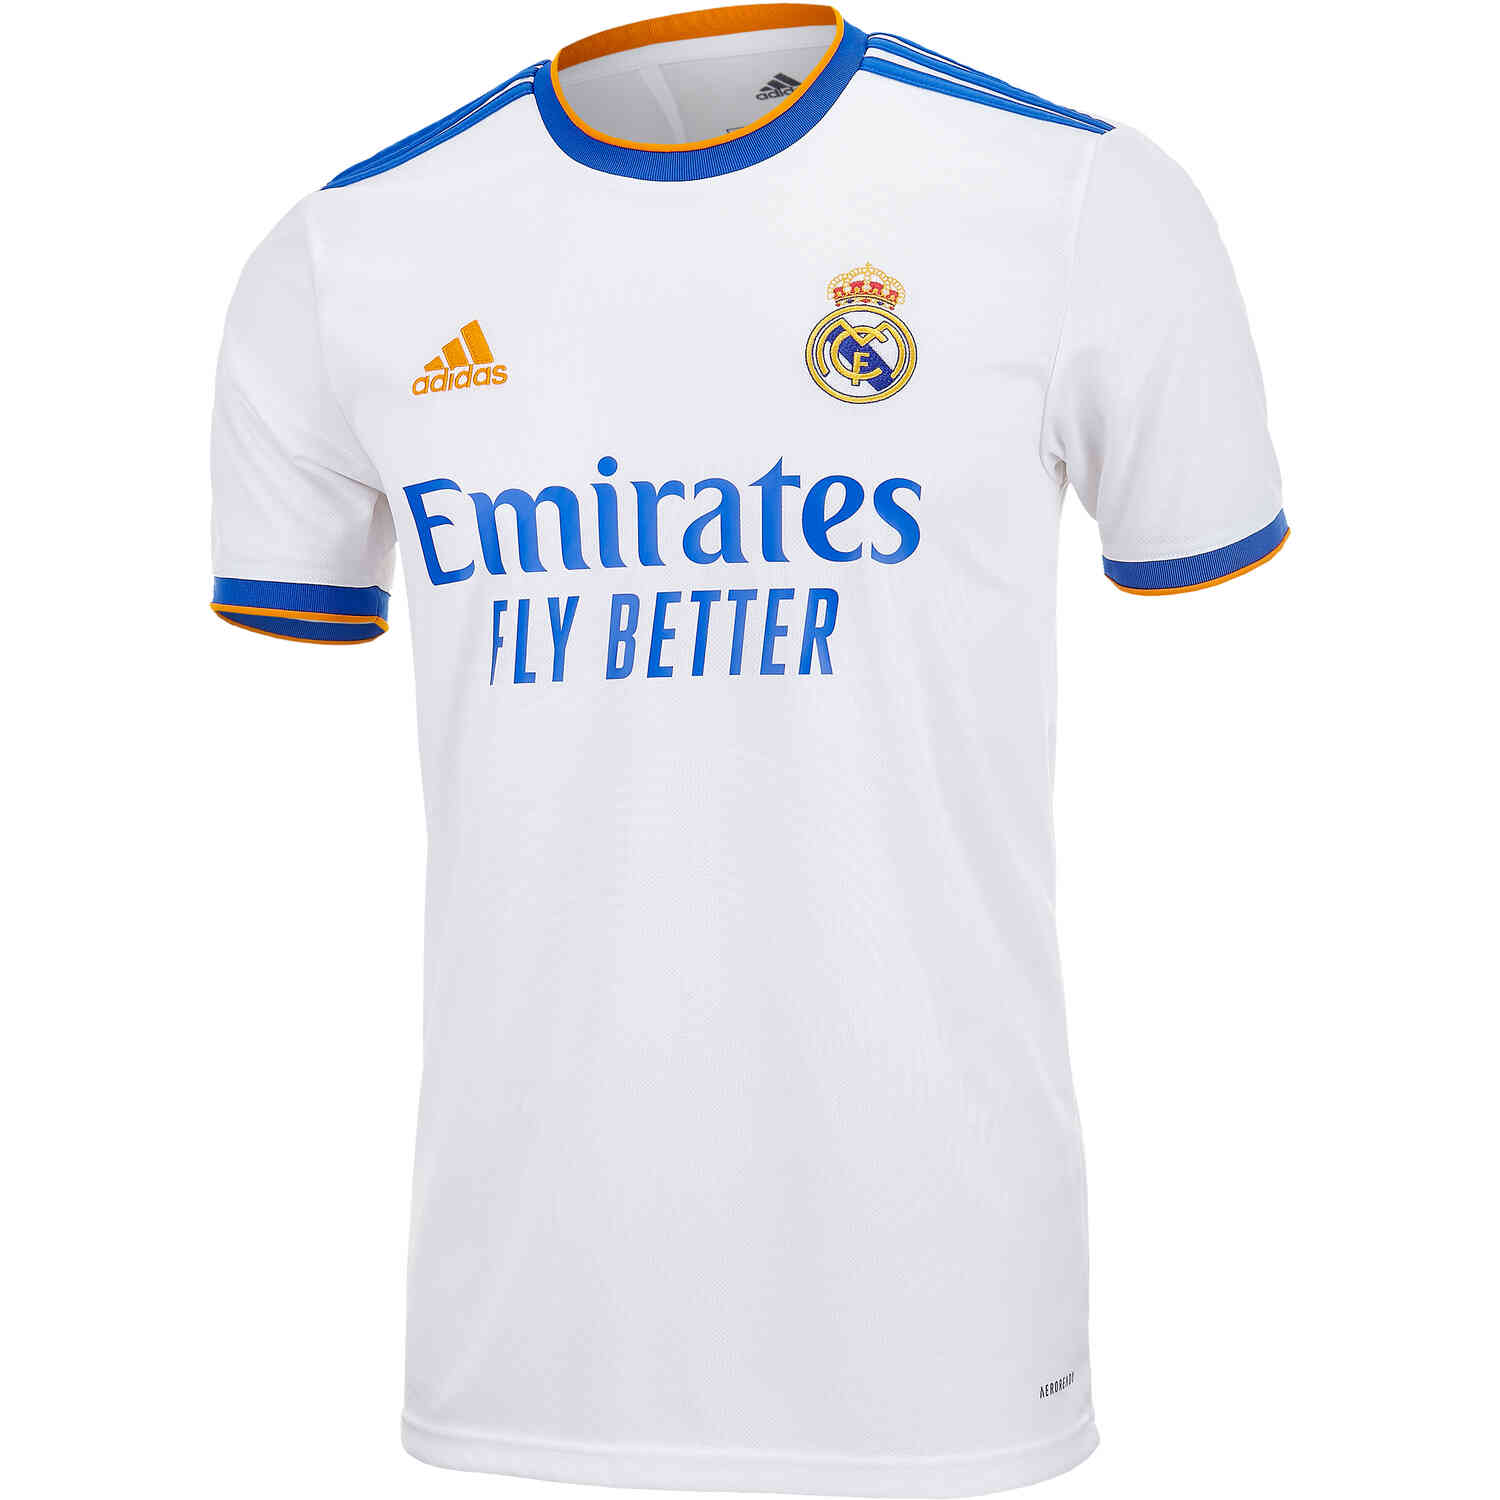 2021/22 Kids adidas Real Madrid Home Jersey - Soccer Master